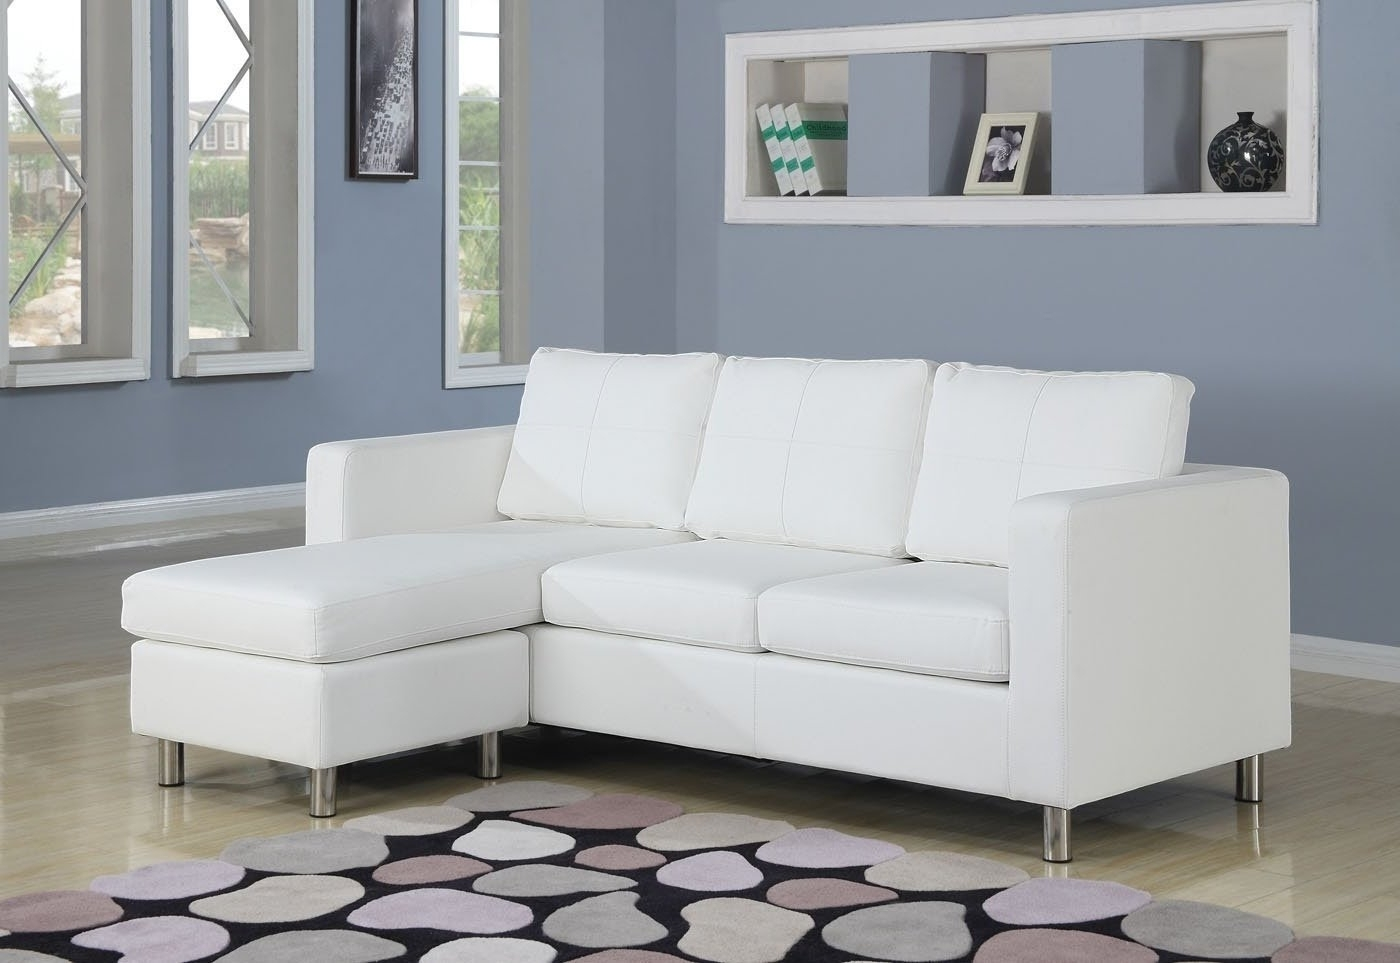 Furniture : Cb2 Sofa Warranty Sofa Chaise Longue Xxl Chaise Sofa In Newest Sectional Sofas In Hyderabad (View 5 of 20)